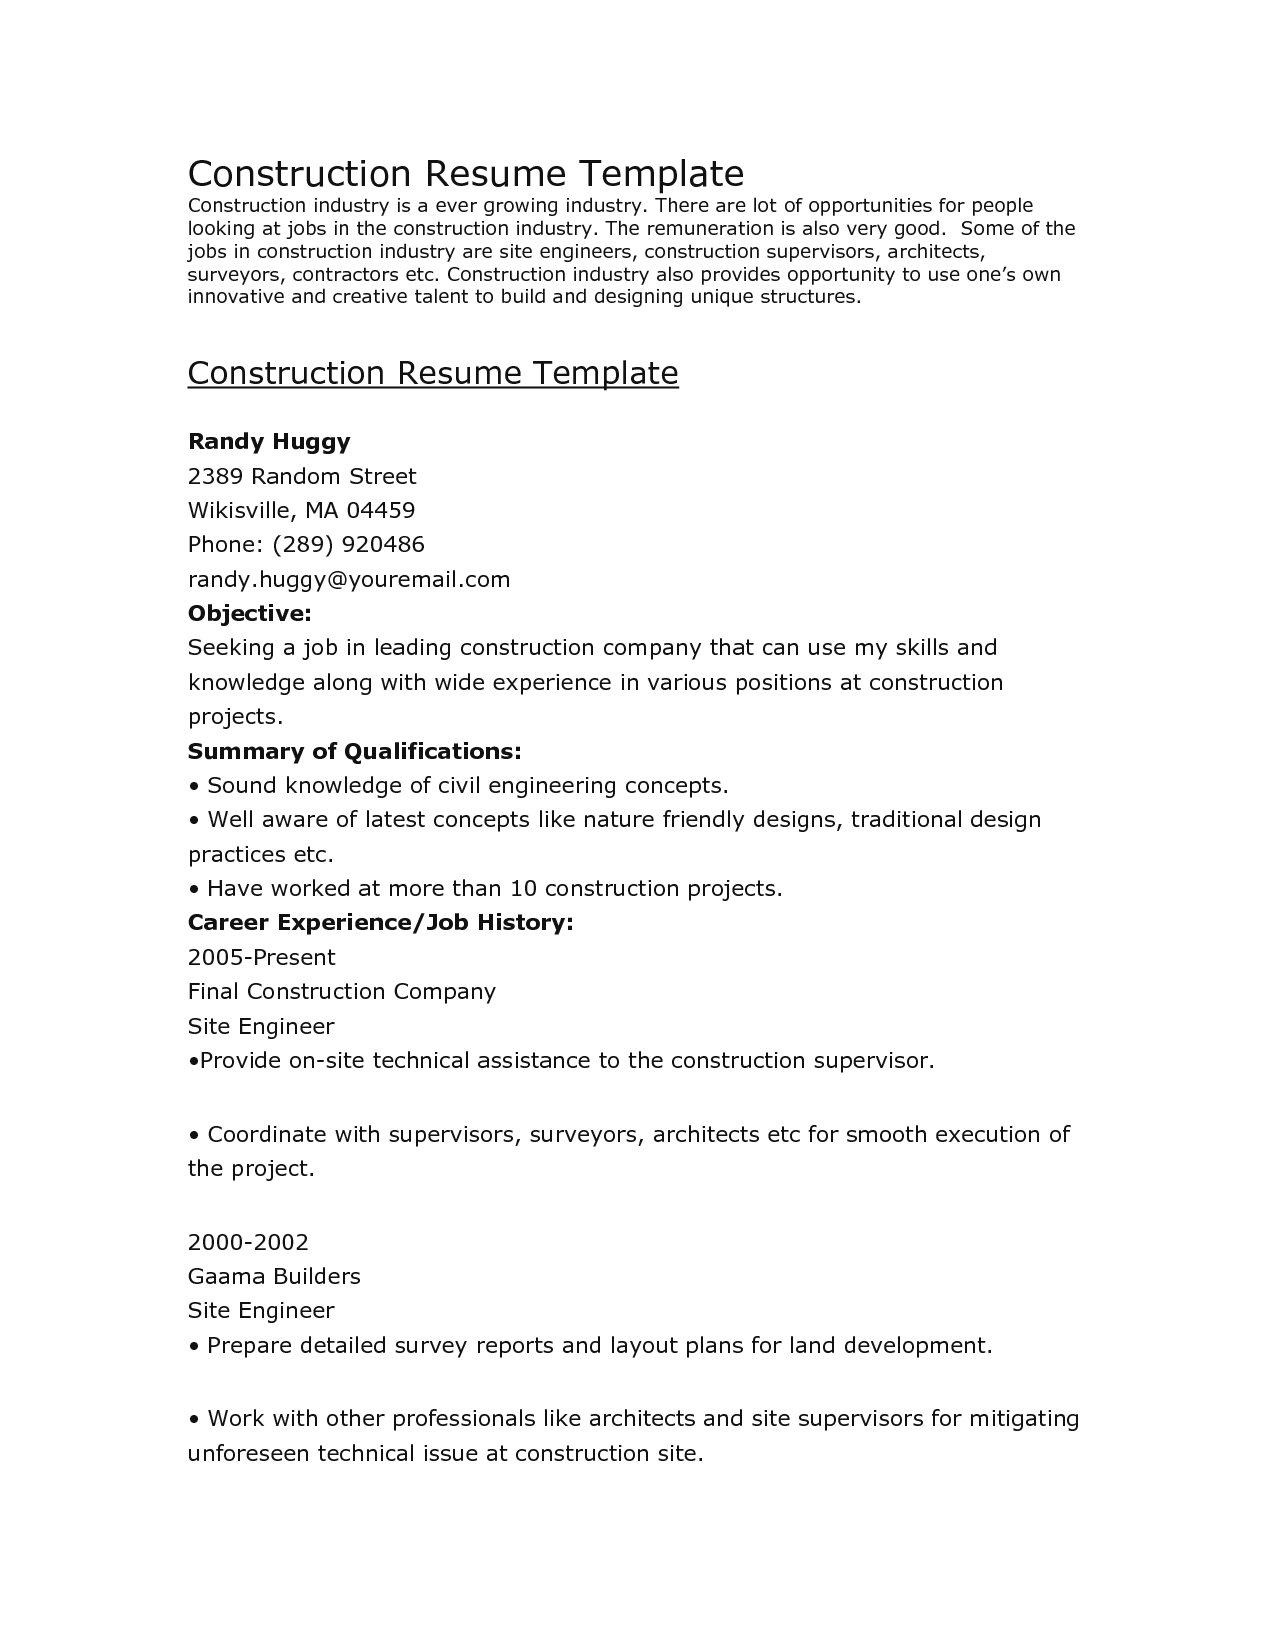 Laborer Resume Examples bricklayer skills resume professional – Sample Resume for Construction Worker